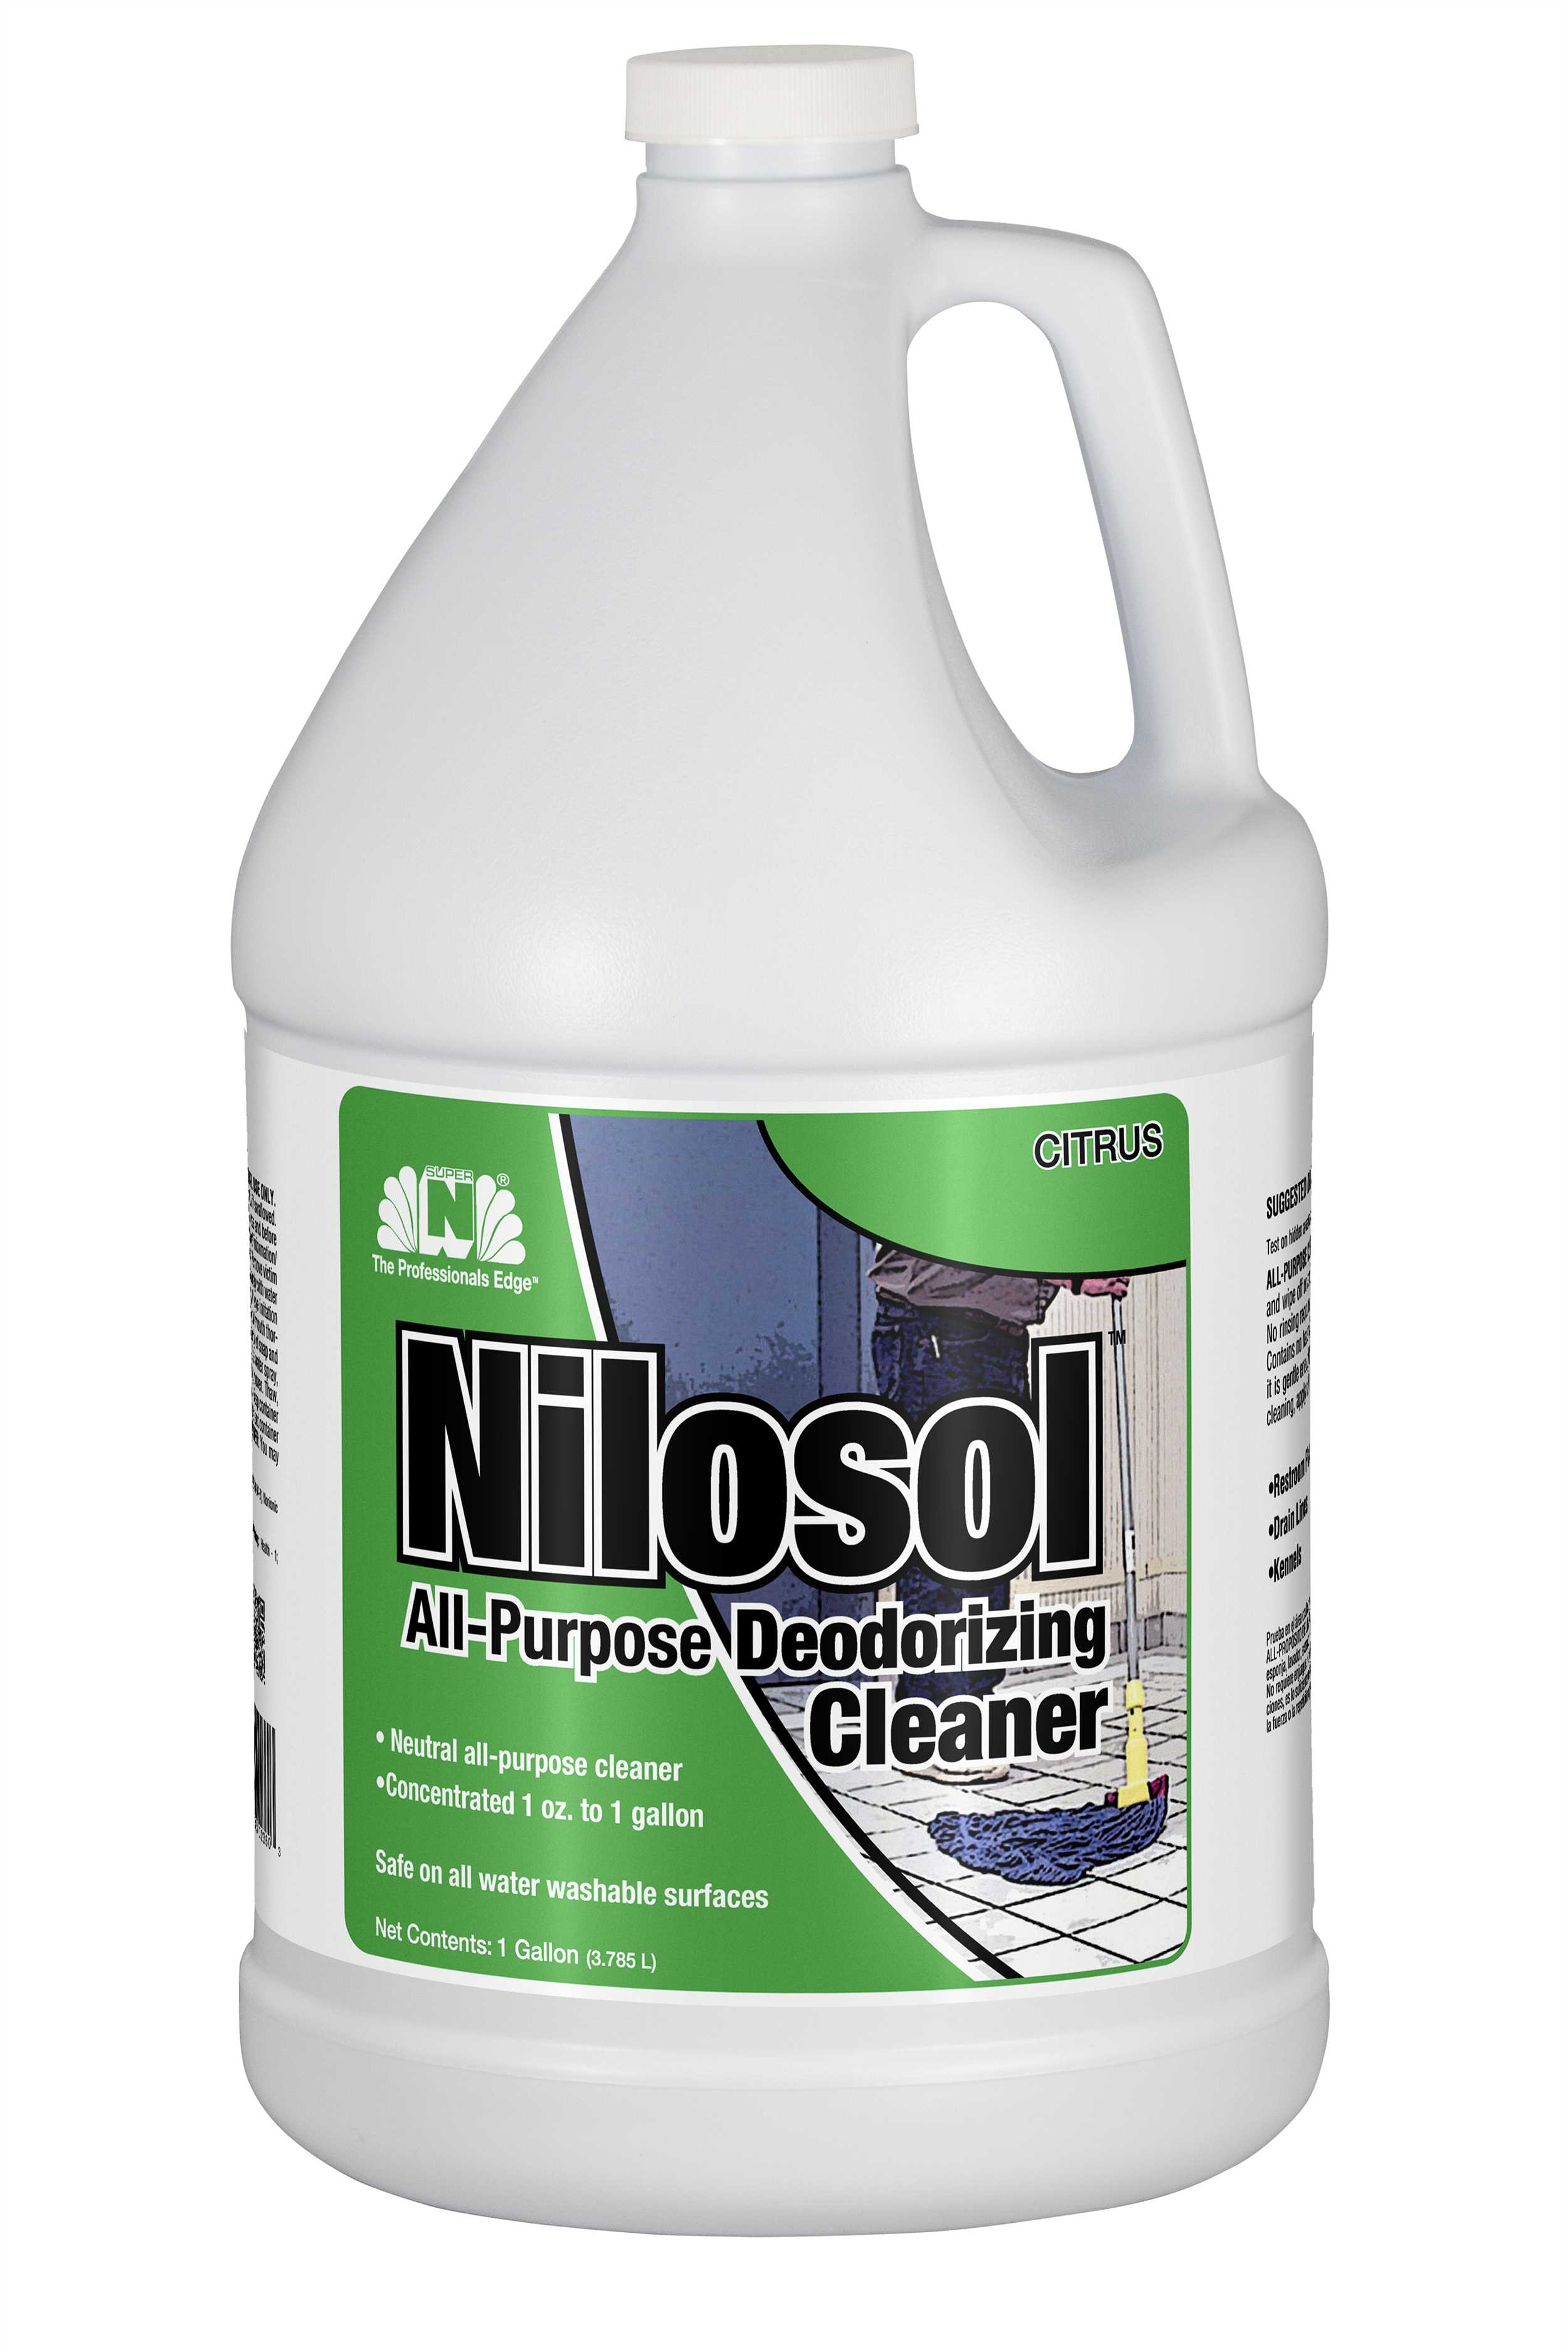 Nilosol All Purpose Deodorizing Cleaner